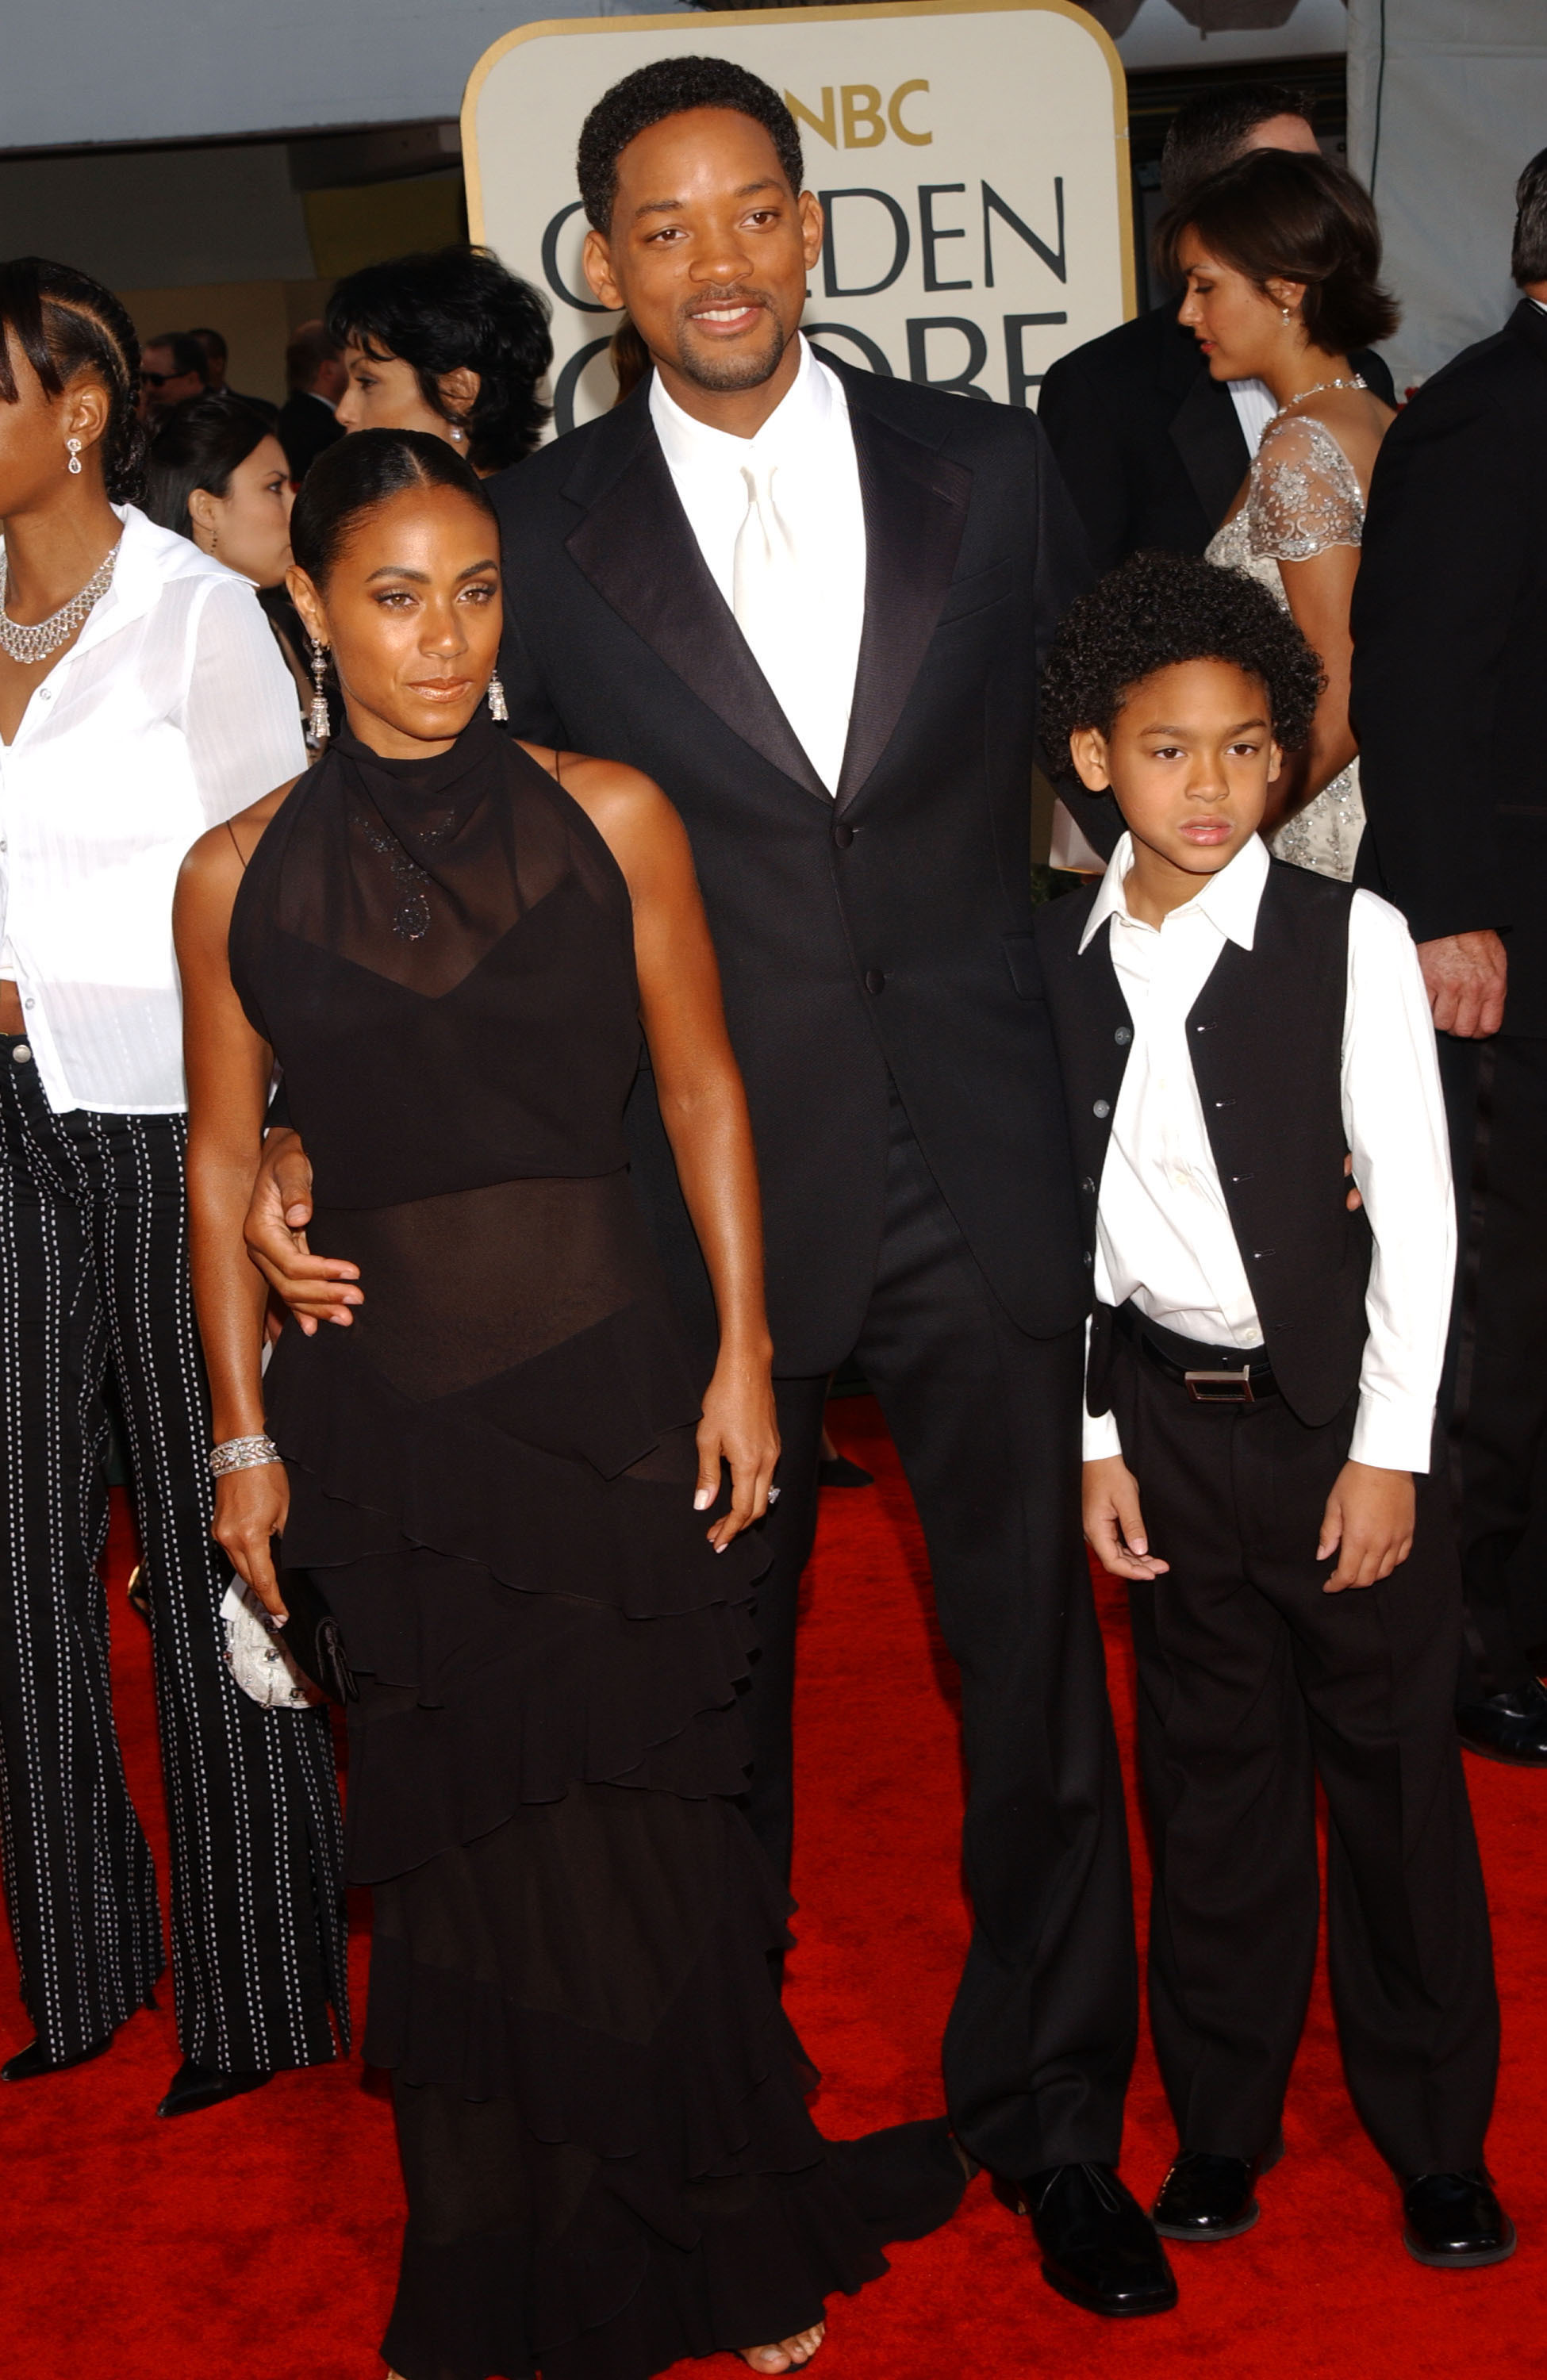 Jada Pinkett Smith, Will Smith and son Trey Smith arrive for the Golden Globe Awards at the Beverly Hilton Hotel in Beverly Hills on Jan. 20, 2002.